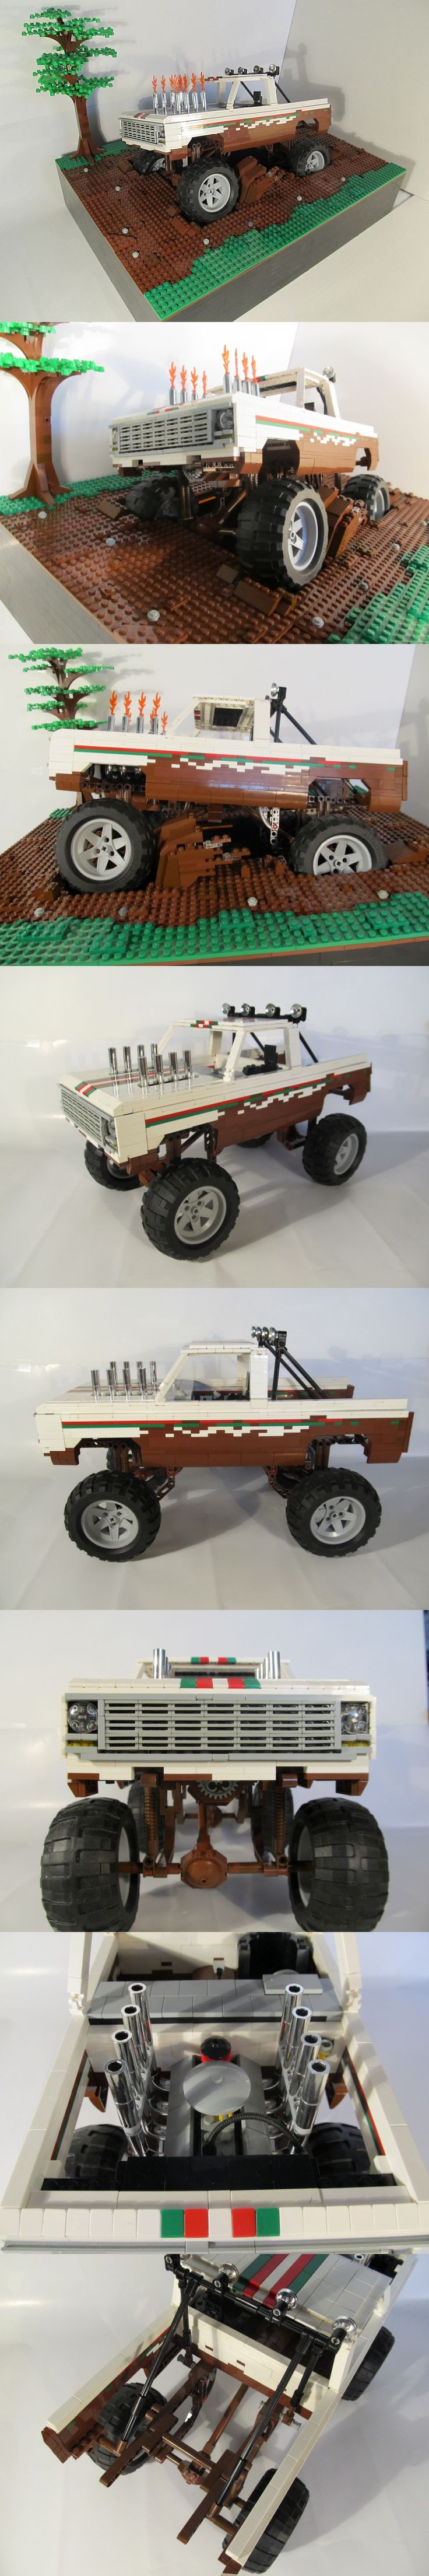 "LEGO ""Octan Racing"" 1973 Chevy pickup mud racer"